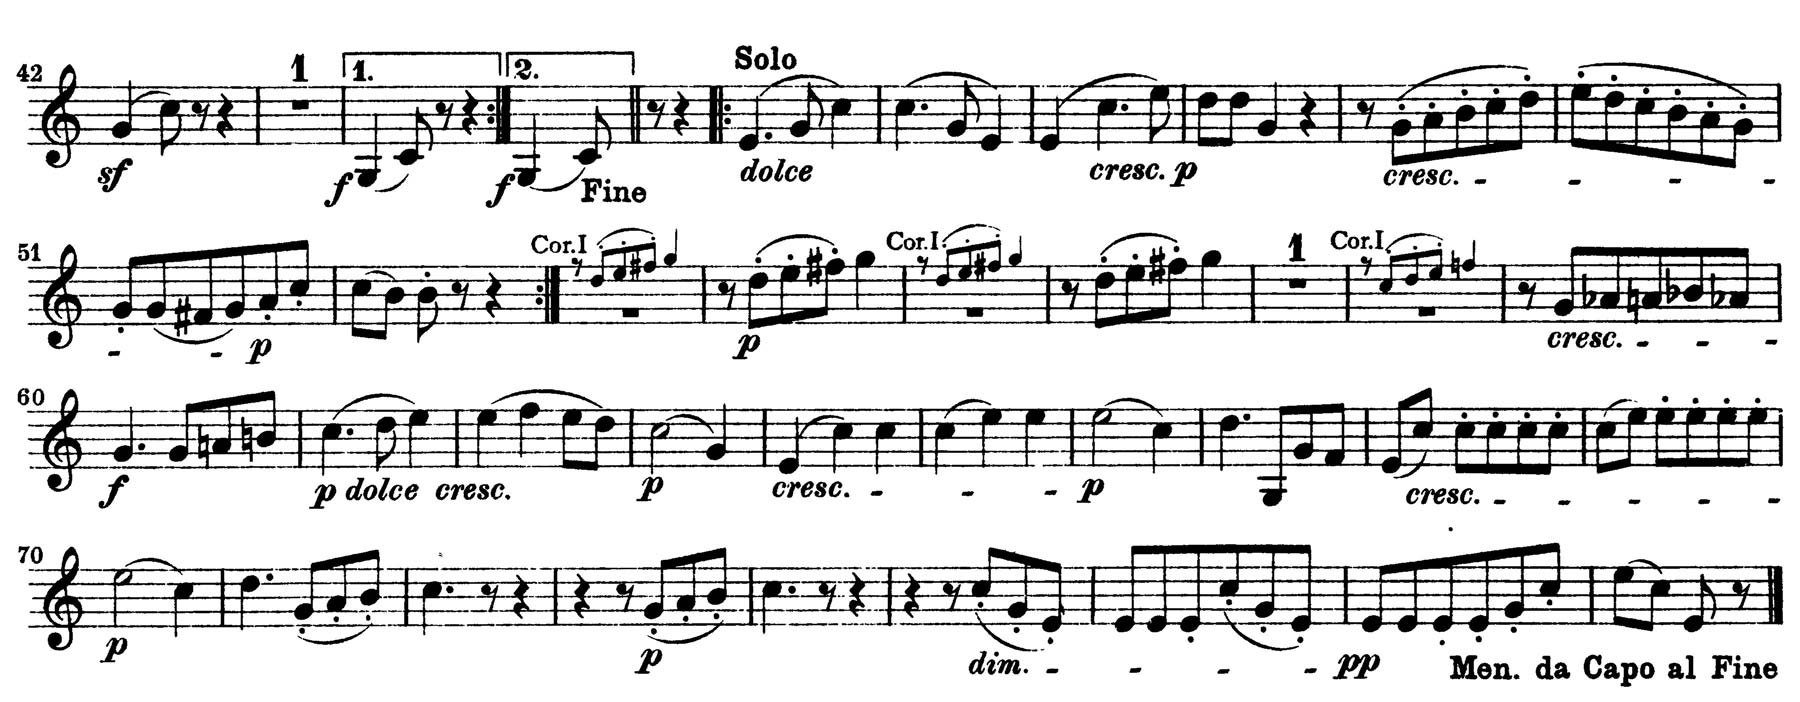 beethoven_symphony_no_8-orchestra-audition-excerpt-horn-1b